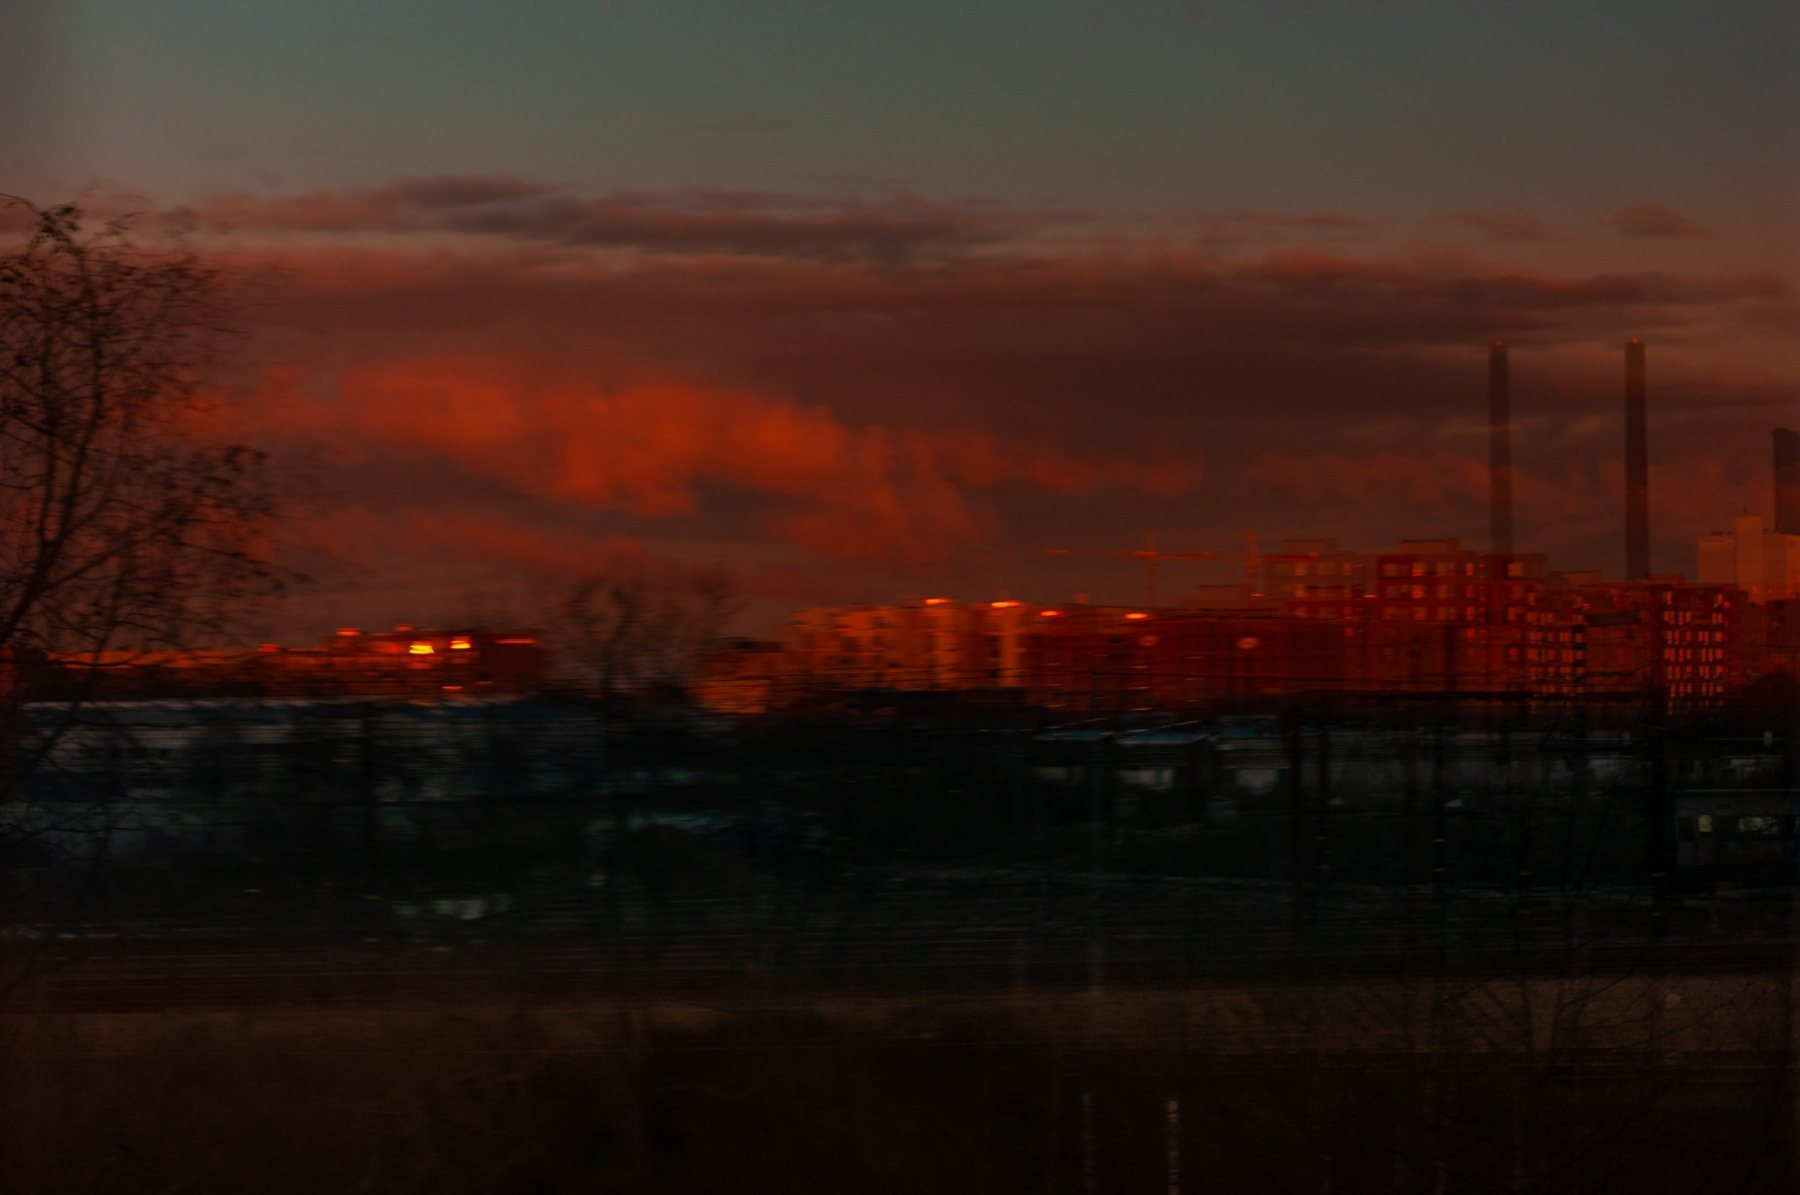 anja-blaksmark-fine-art-redness-of-the-edge-of-town